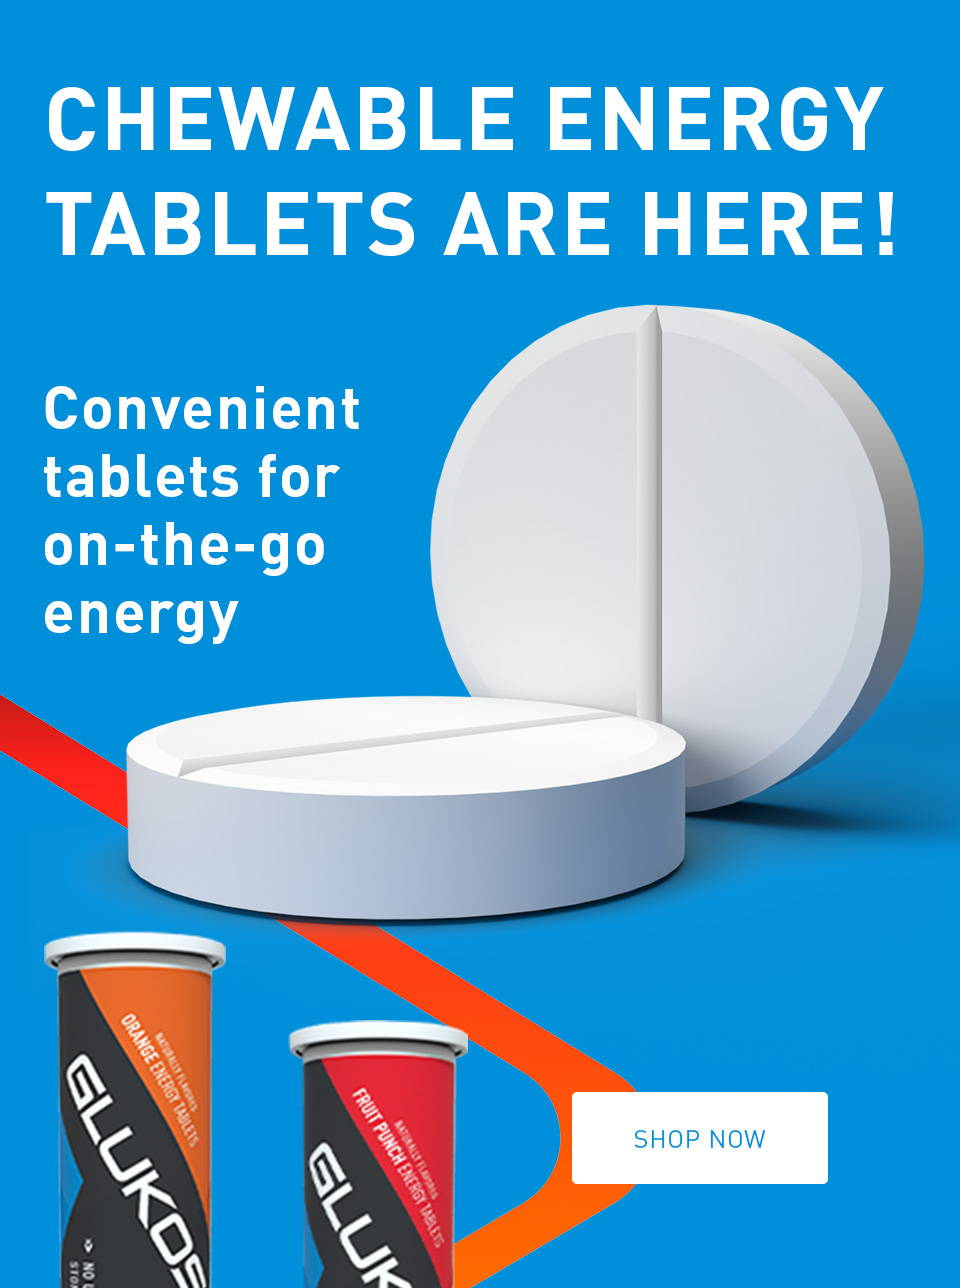 Chewable energy tablets are here! Convenient tablets for on-the-go energy.